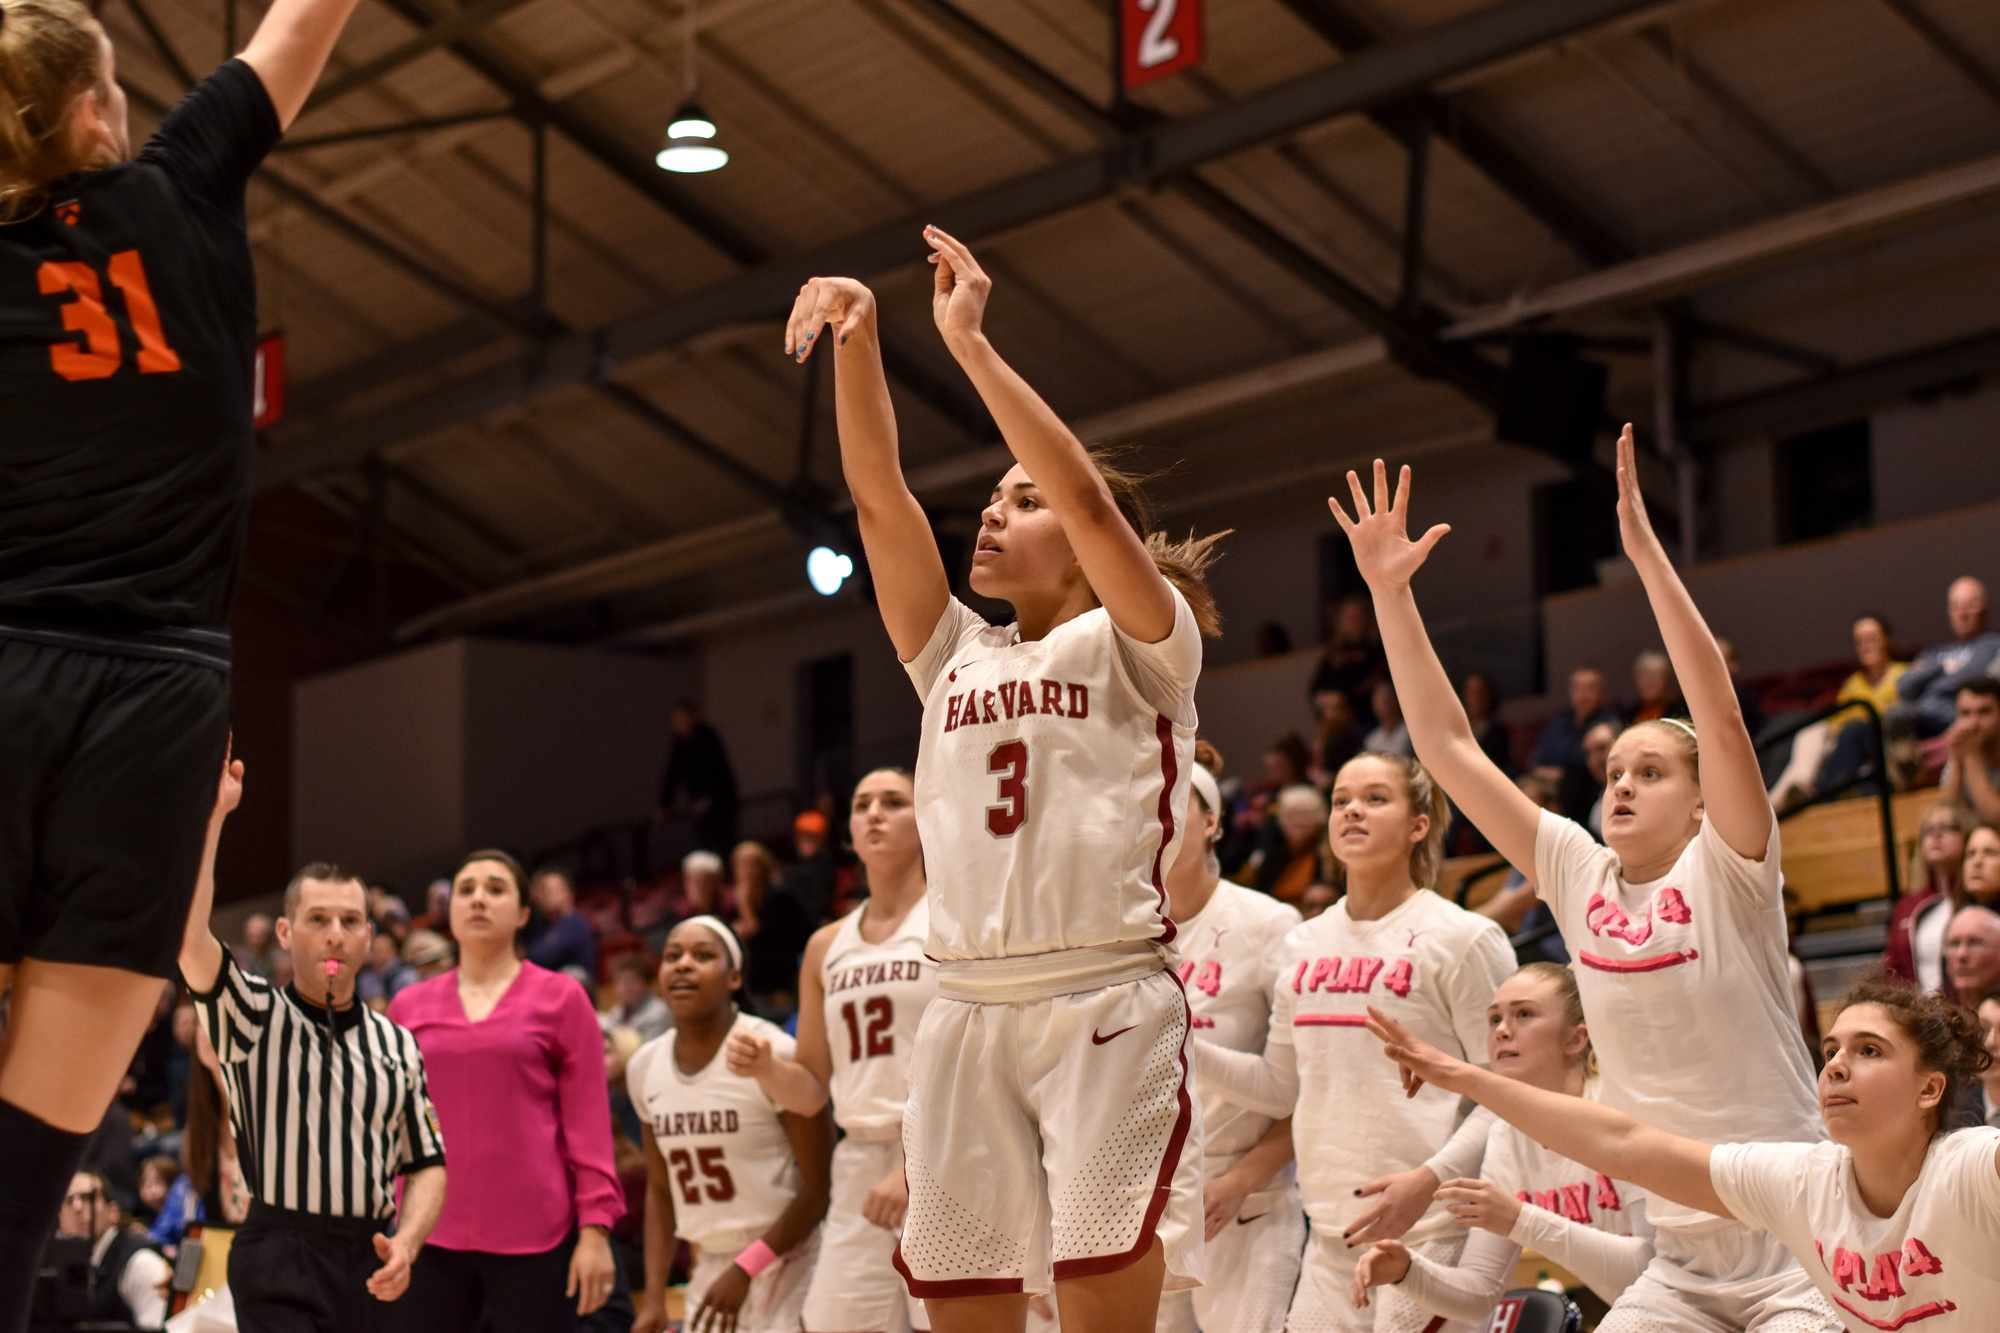 Harvard Basketball will host the Ivy League Tournament for the first time in 2020.